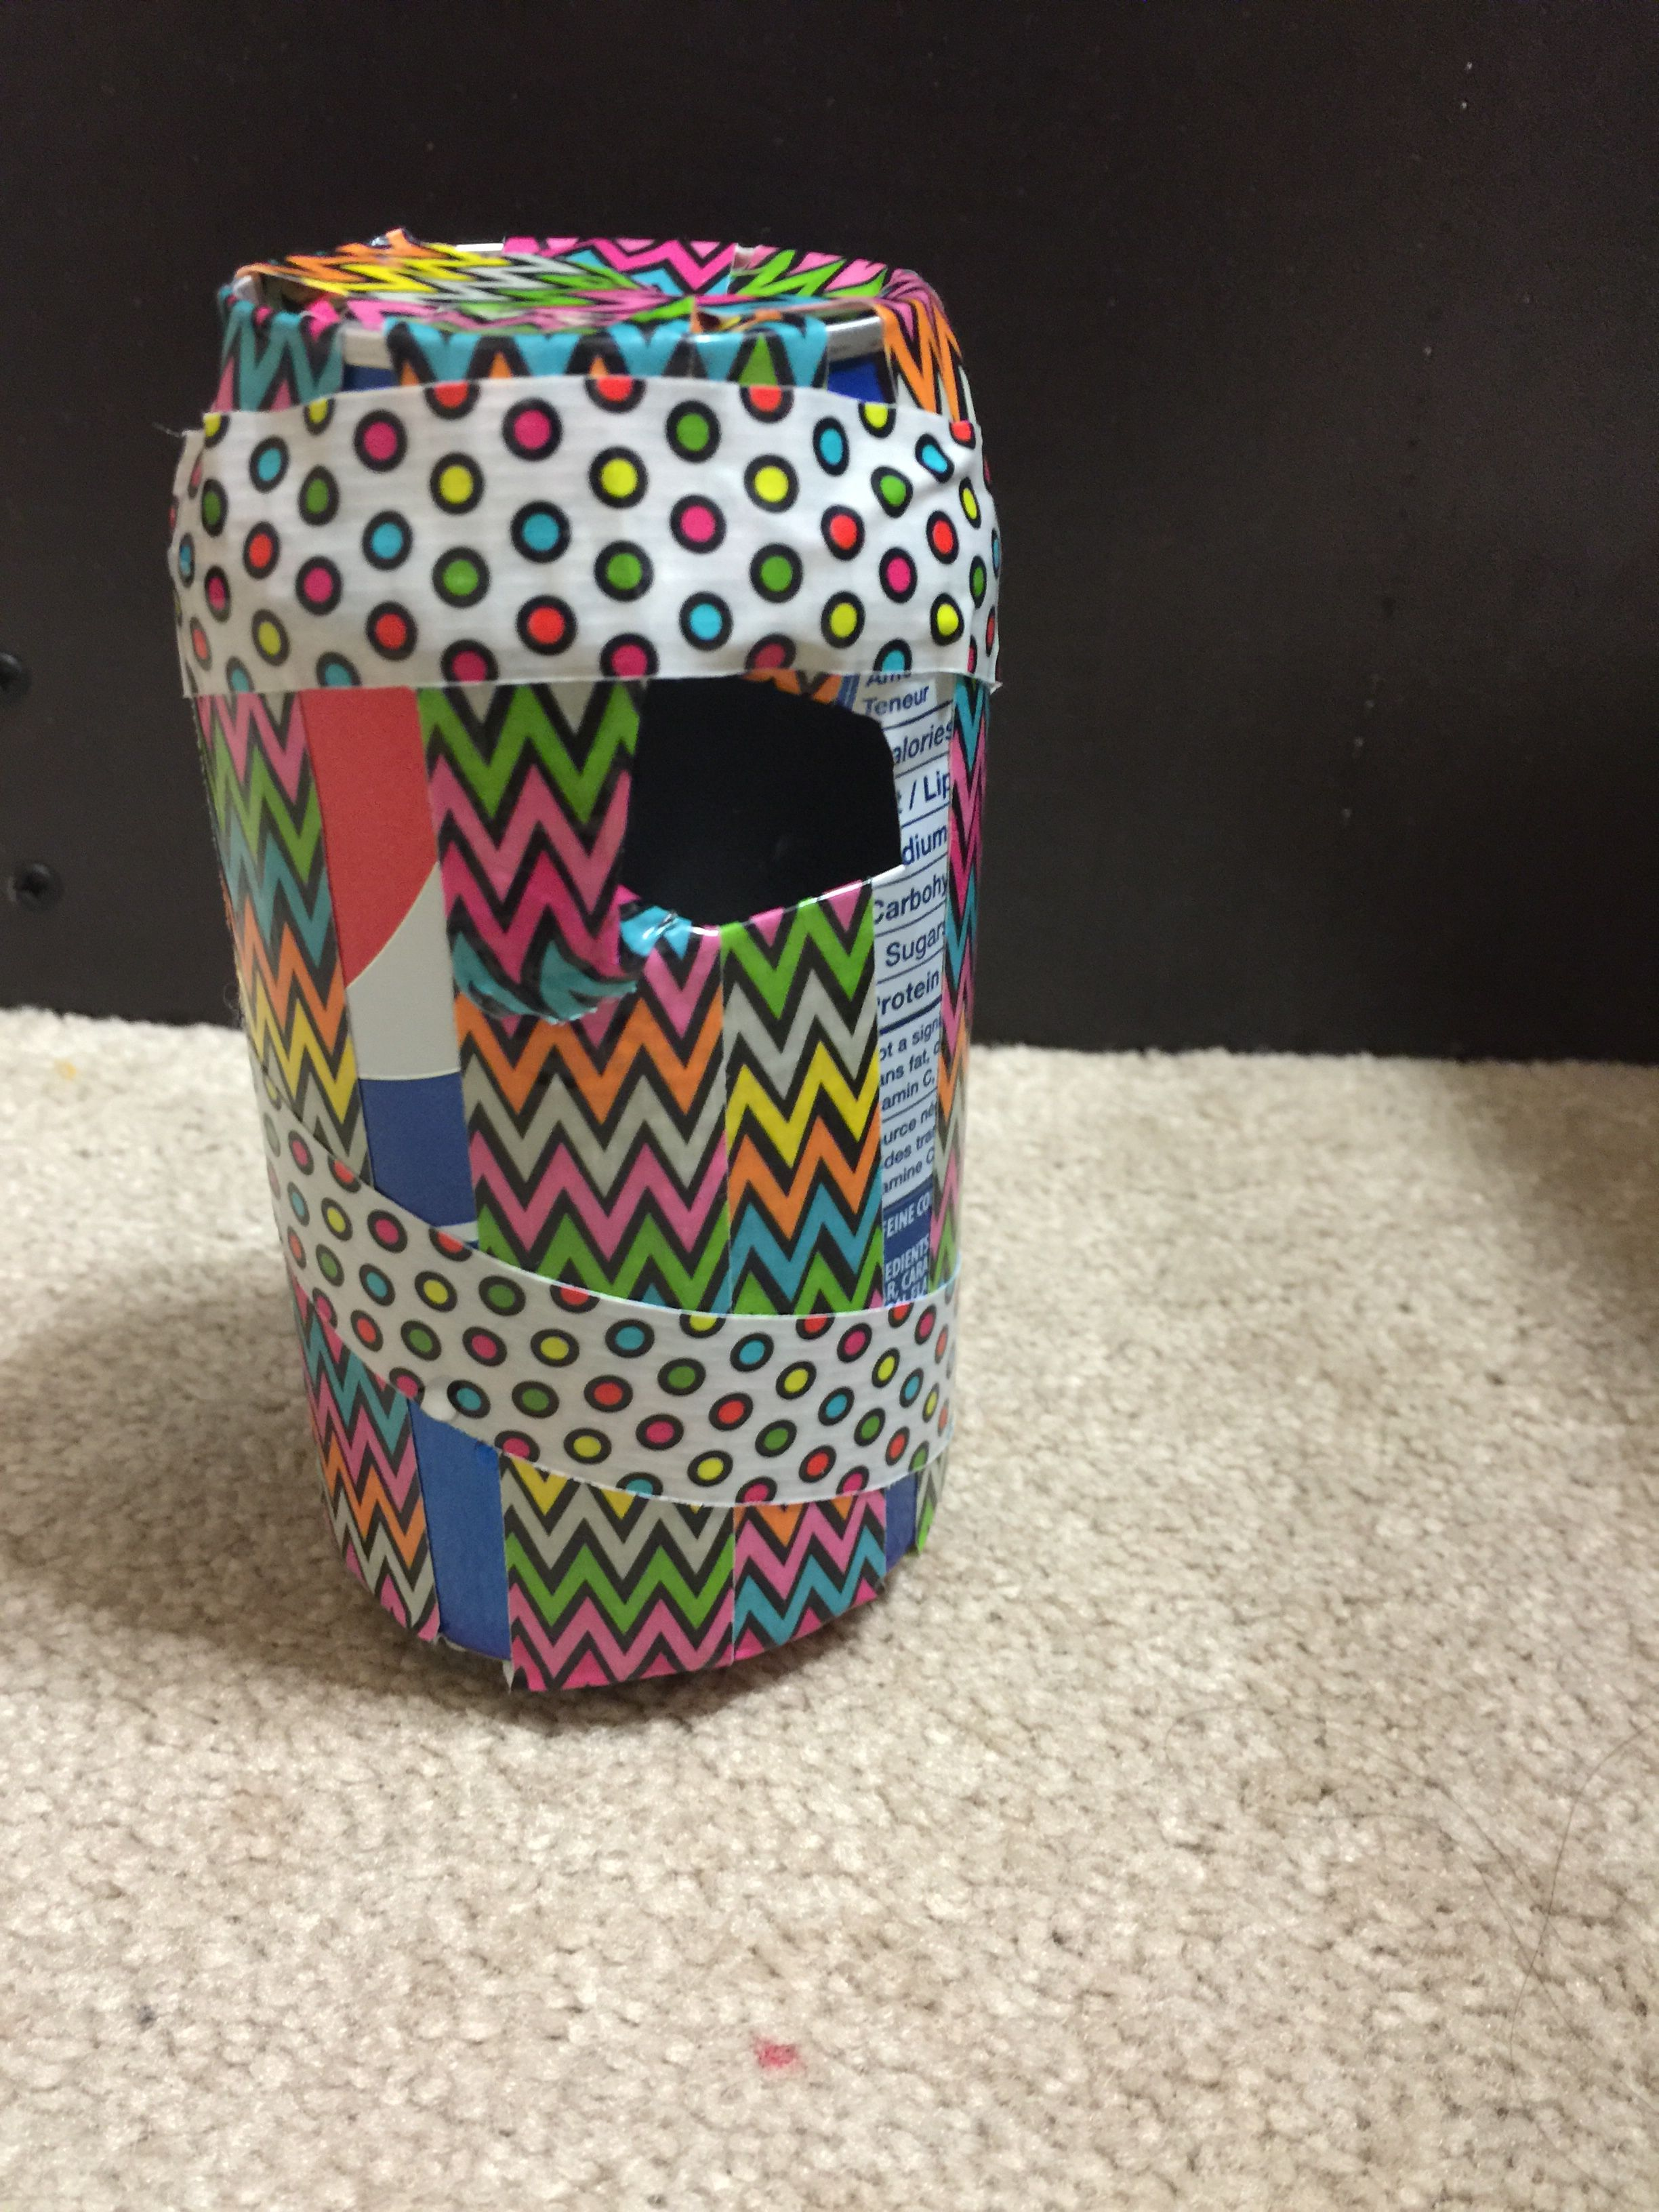 Pop can piggy bank. step one ,get a pop can. step two ,cut it as big as you want the hole to be so your money can fit in it ,step three  decorate it with washy tape and there you have your quick and easy piggy bank